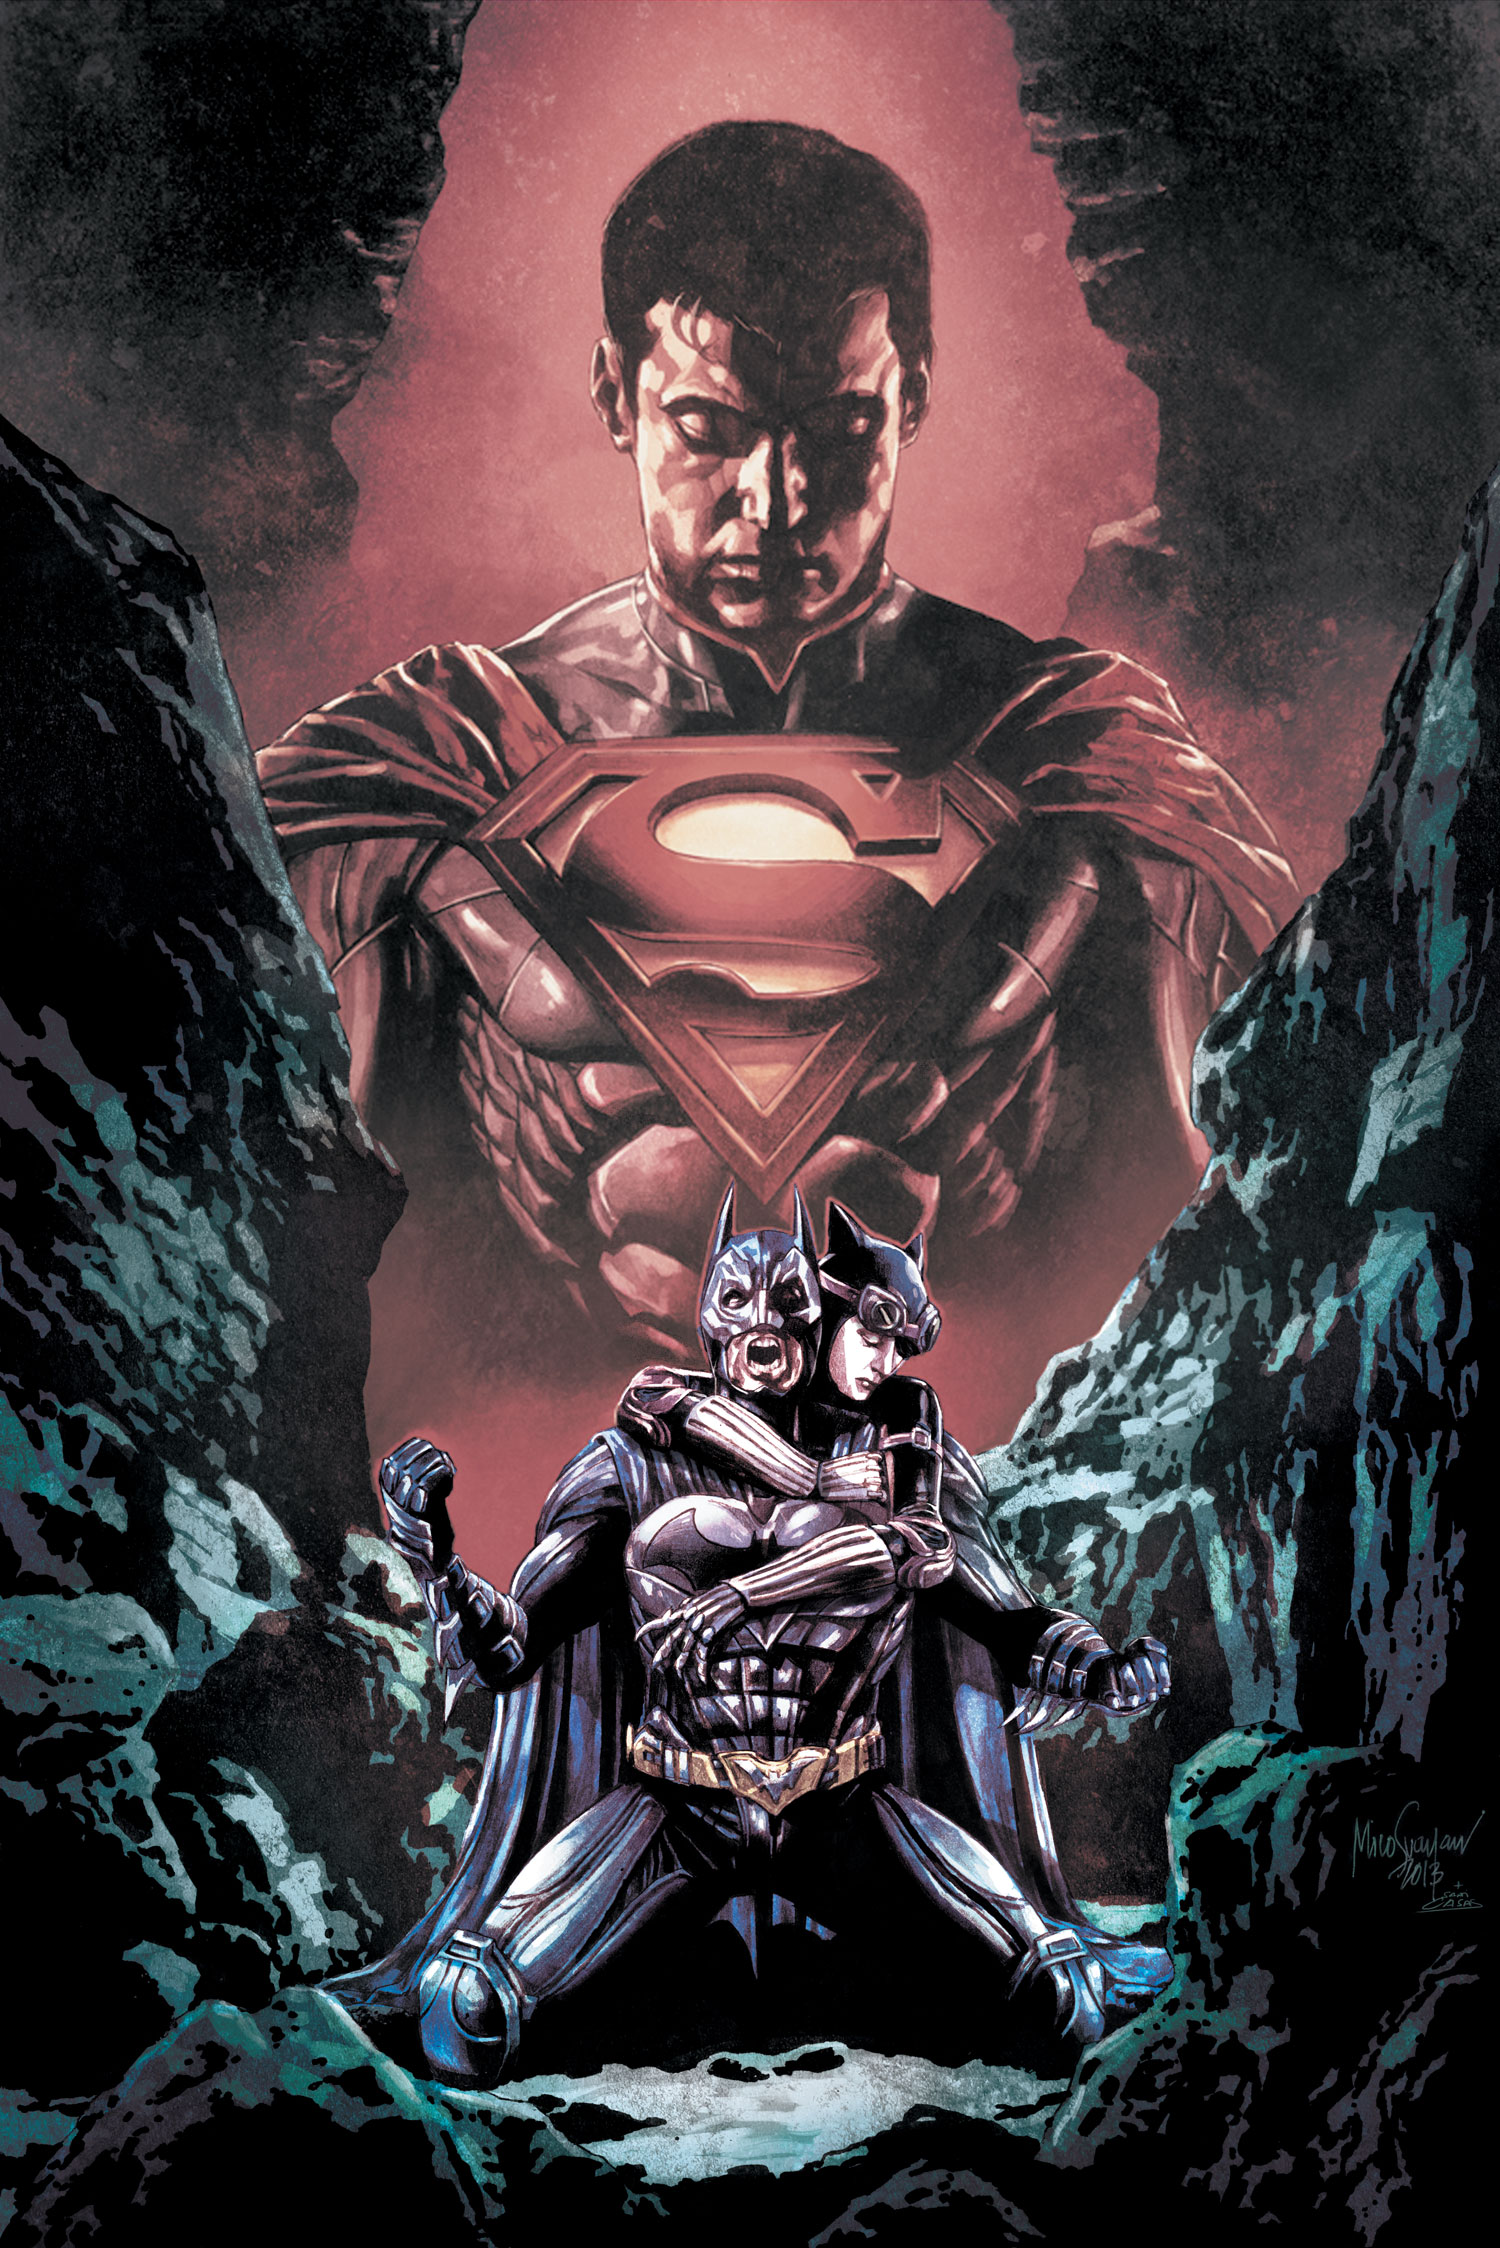 Injustice: Gods Among Us Issue 6 | Injustice:Gods Among Us Wiki | FANDOM  powered by Wikia